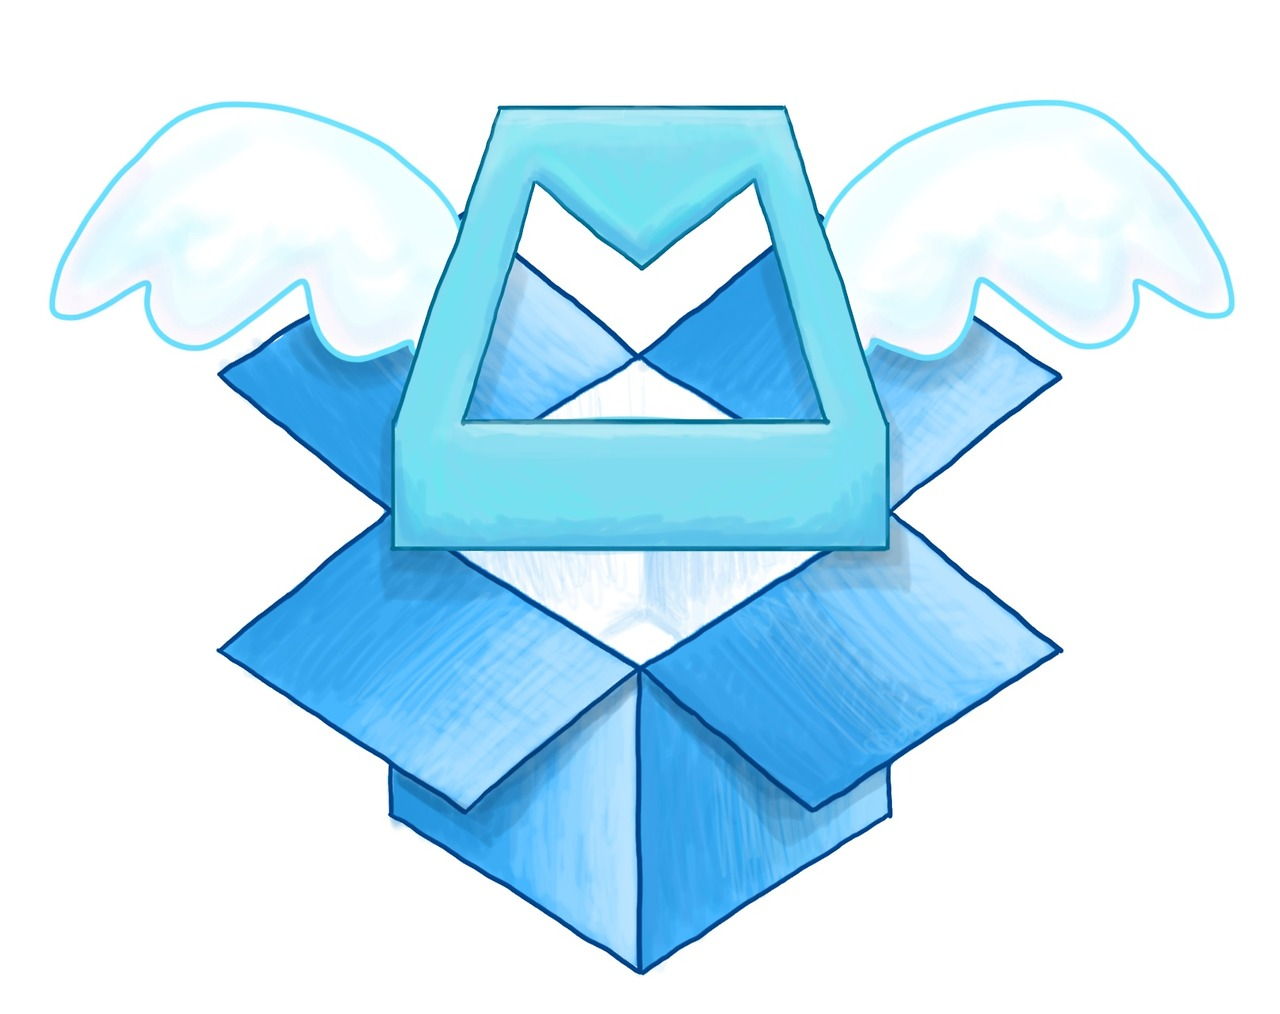 iPad client? Mac first please! parislemon: I know some of you have been waiting for my thoughts on Dropbox acquiring Mailbox — my apologies, I've been sidetracked by SXSW SARS. I also realize I still need to write my longer thoughts about how Mailbox changed my email habits. For now, let me just congratulate the Mailbox team. They built something truly amazing and I could not be happier that the product will continue to live on and grow under the wings of Dropbox. Many of you know how excited I've been about Mailbox over the past several months — and not just as an investor, but as a user. Email has been so broken for so long and these guys were the first ones really thinking outside the — sorry — box. So the success they've seen could not be any less surprising. I think Dropbox was very savvy to make this move and I think it seems like a great fit. Now get me a damn iPad client.